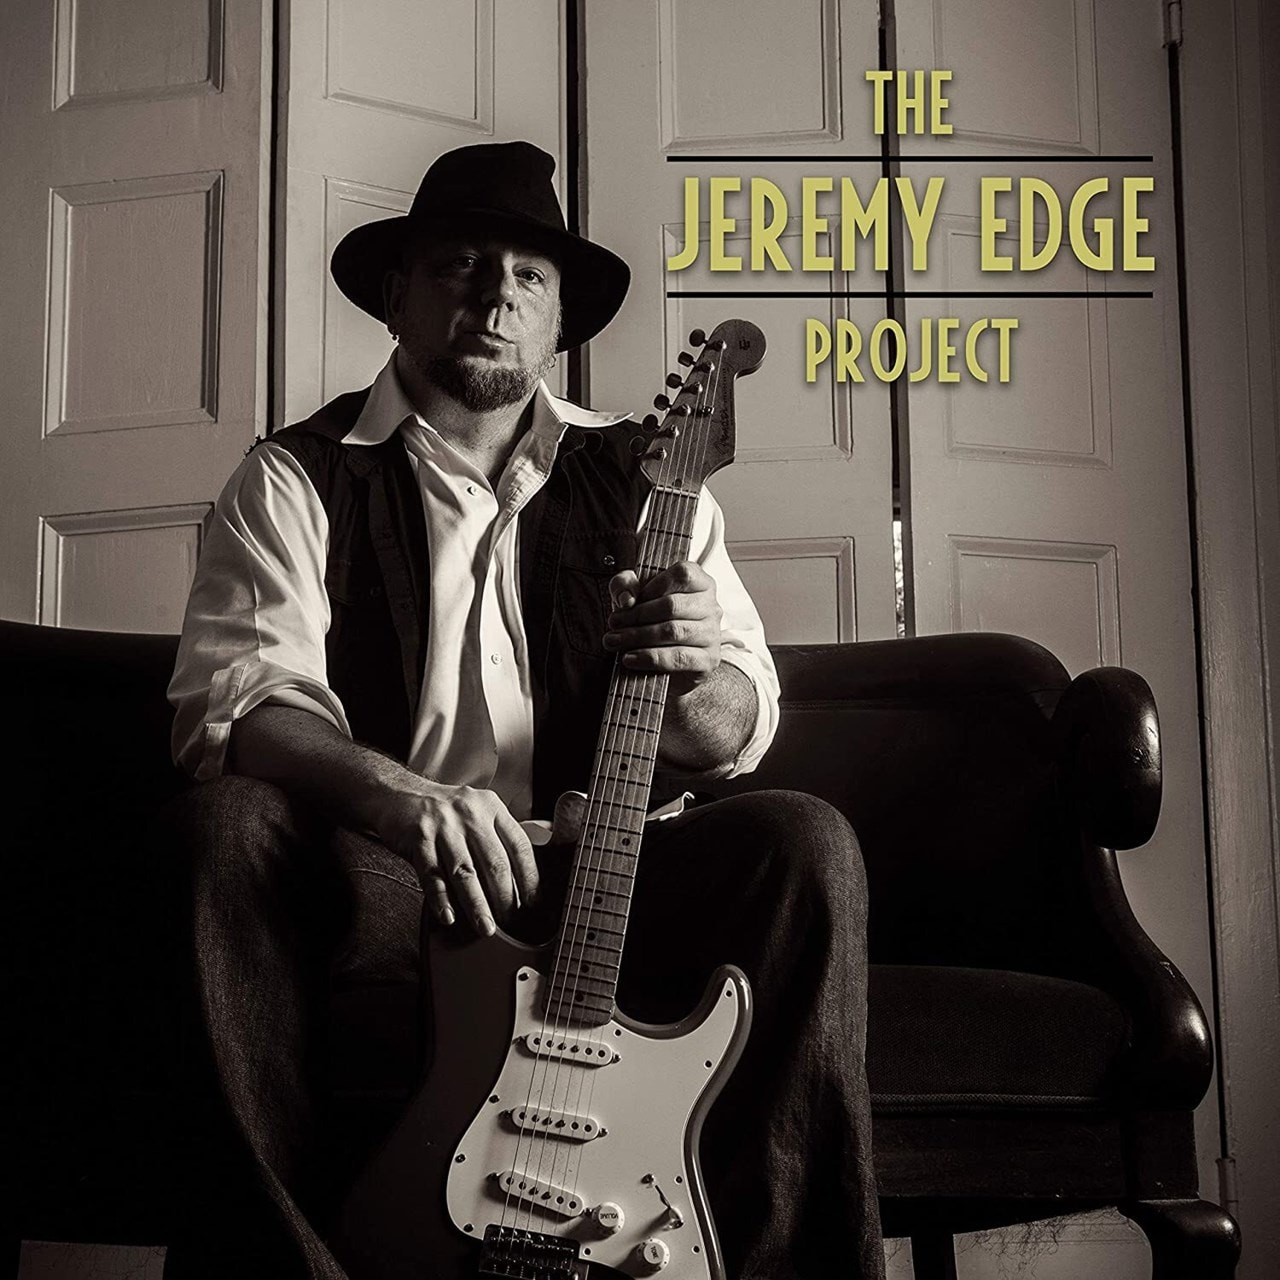 The Jeremy Edge Project - 1